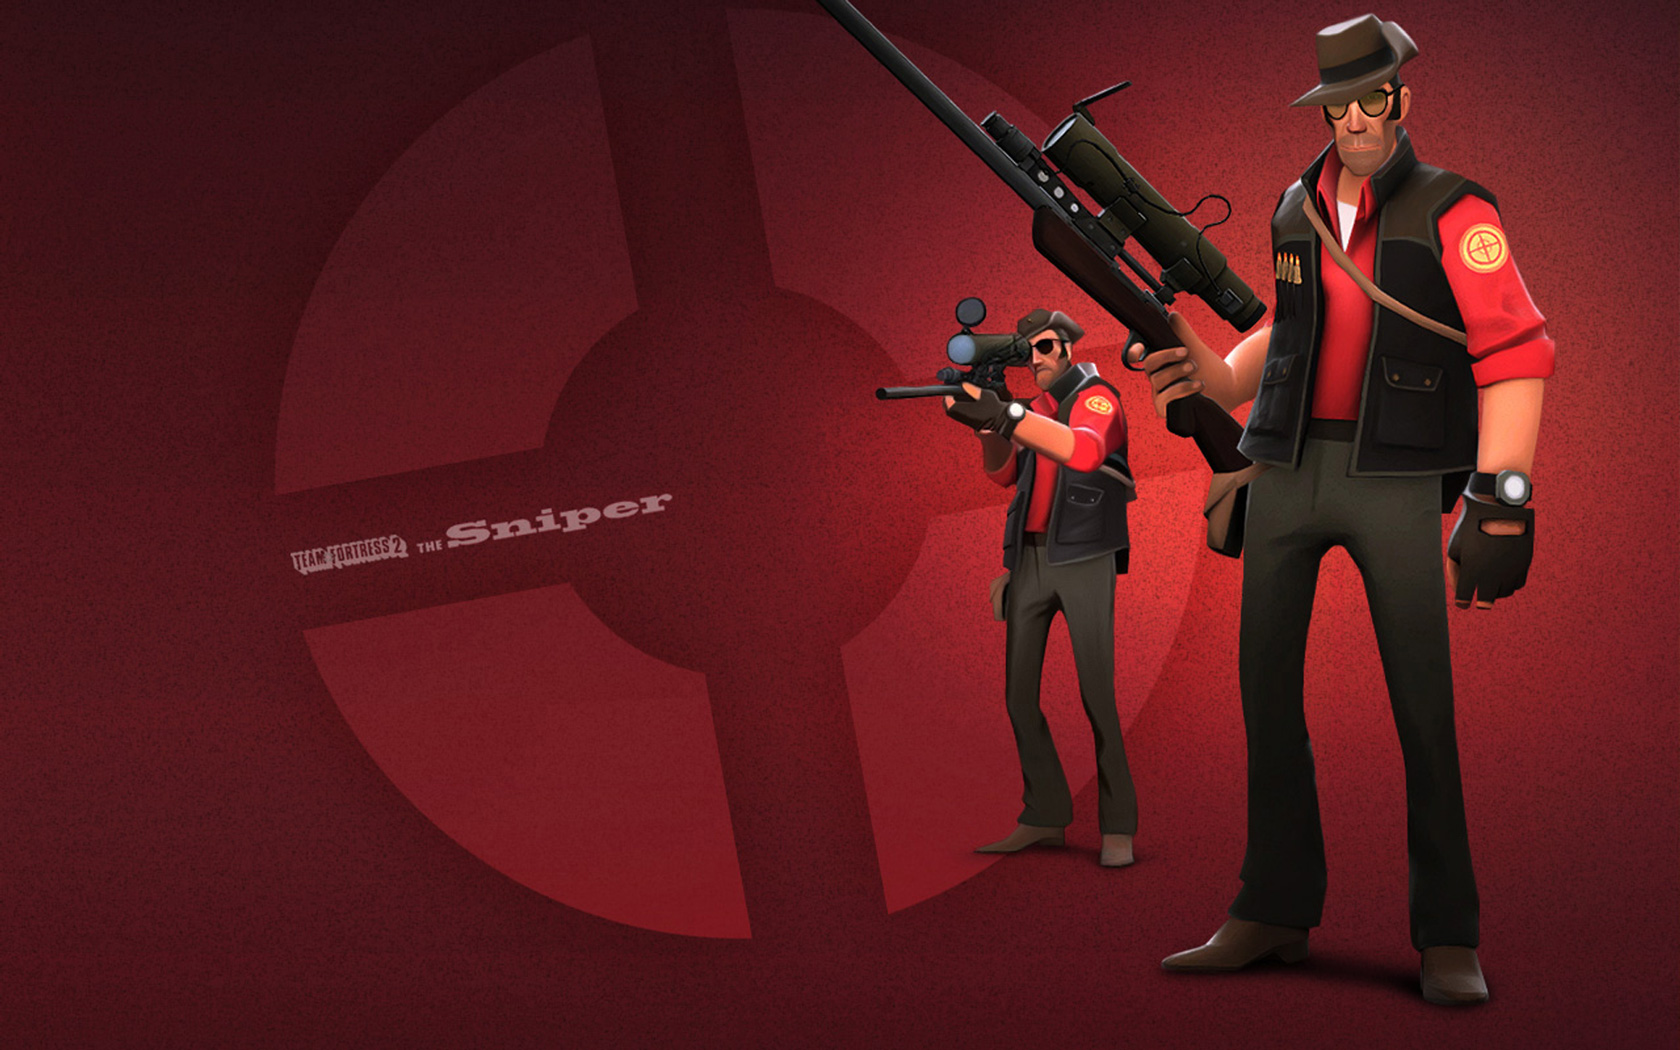 Team Fortress 2 Wallpaper in 1680x1050